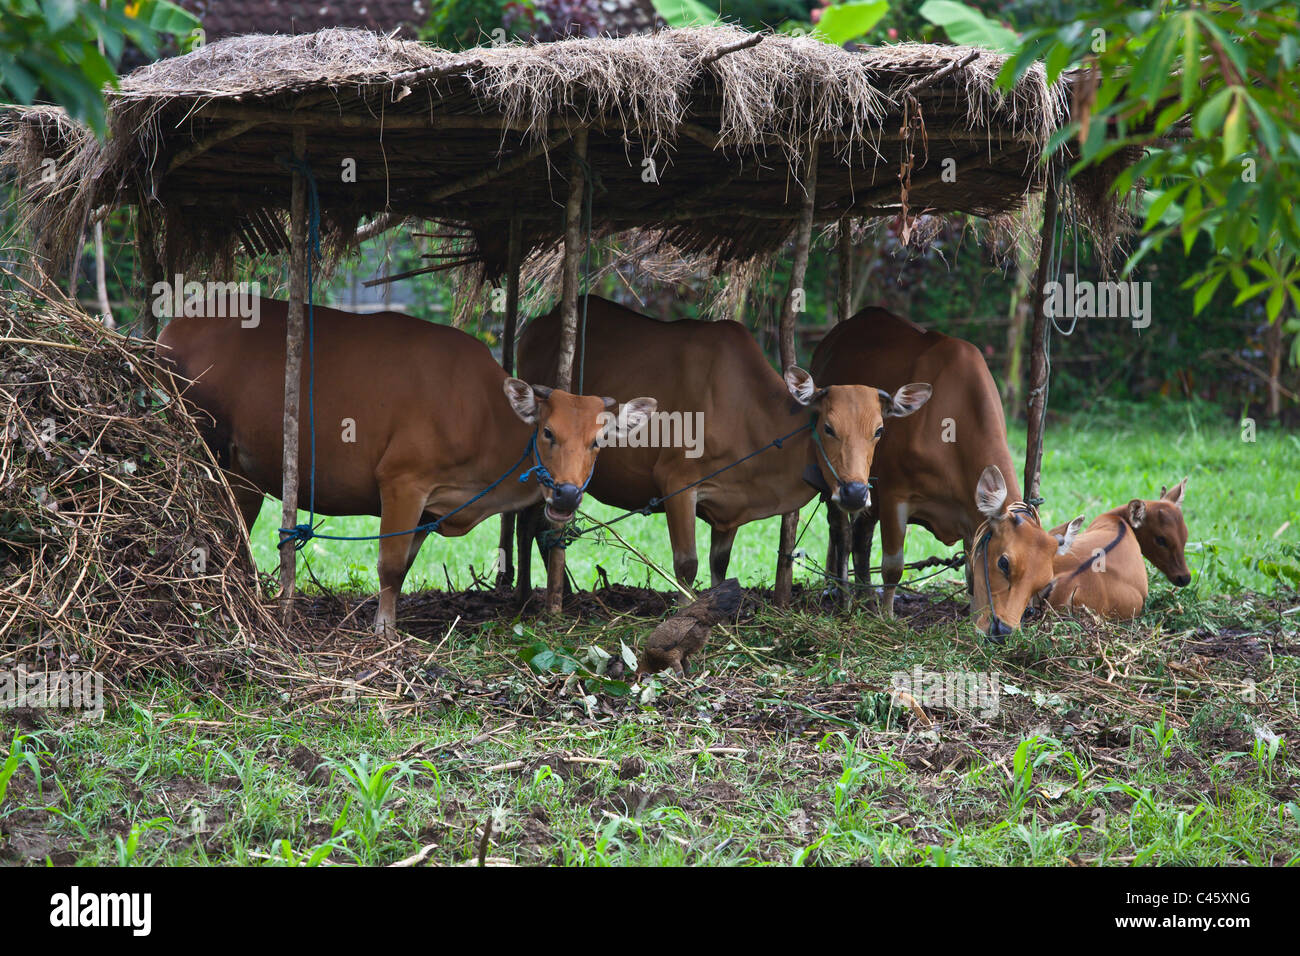 MILK COWS in a agriculture valley near PEMUTERAN - BALI, INDONESIA - Stock Image